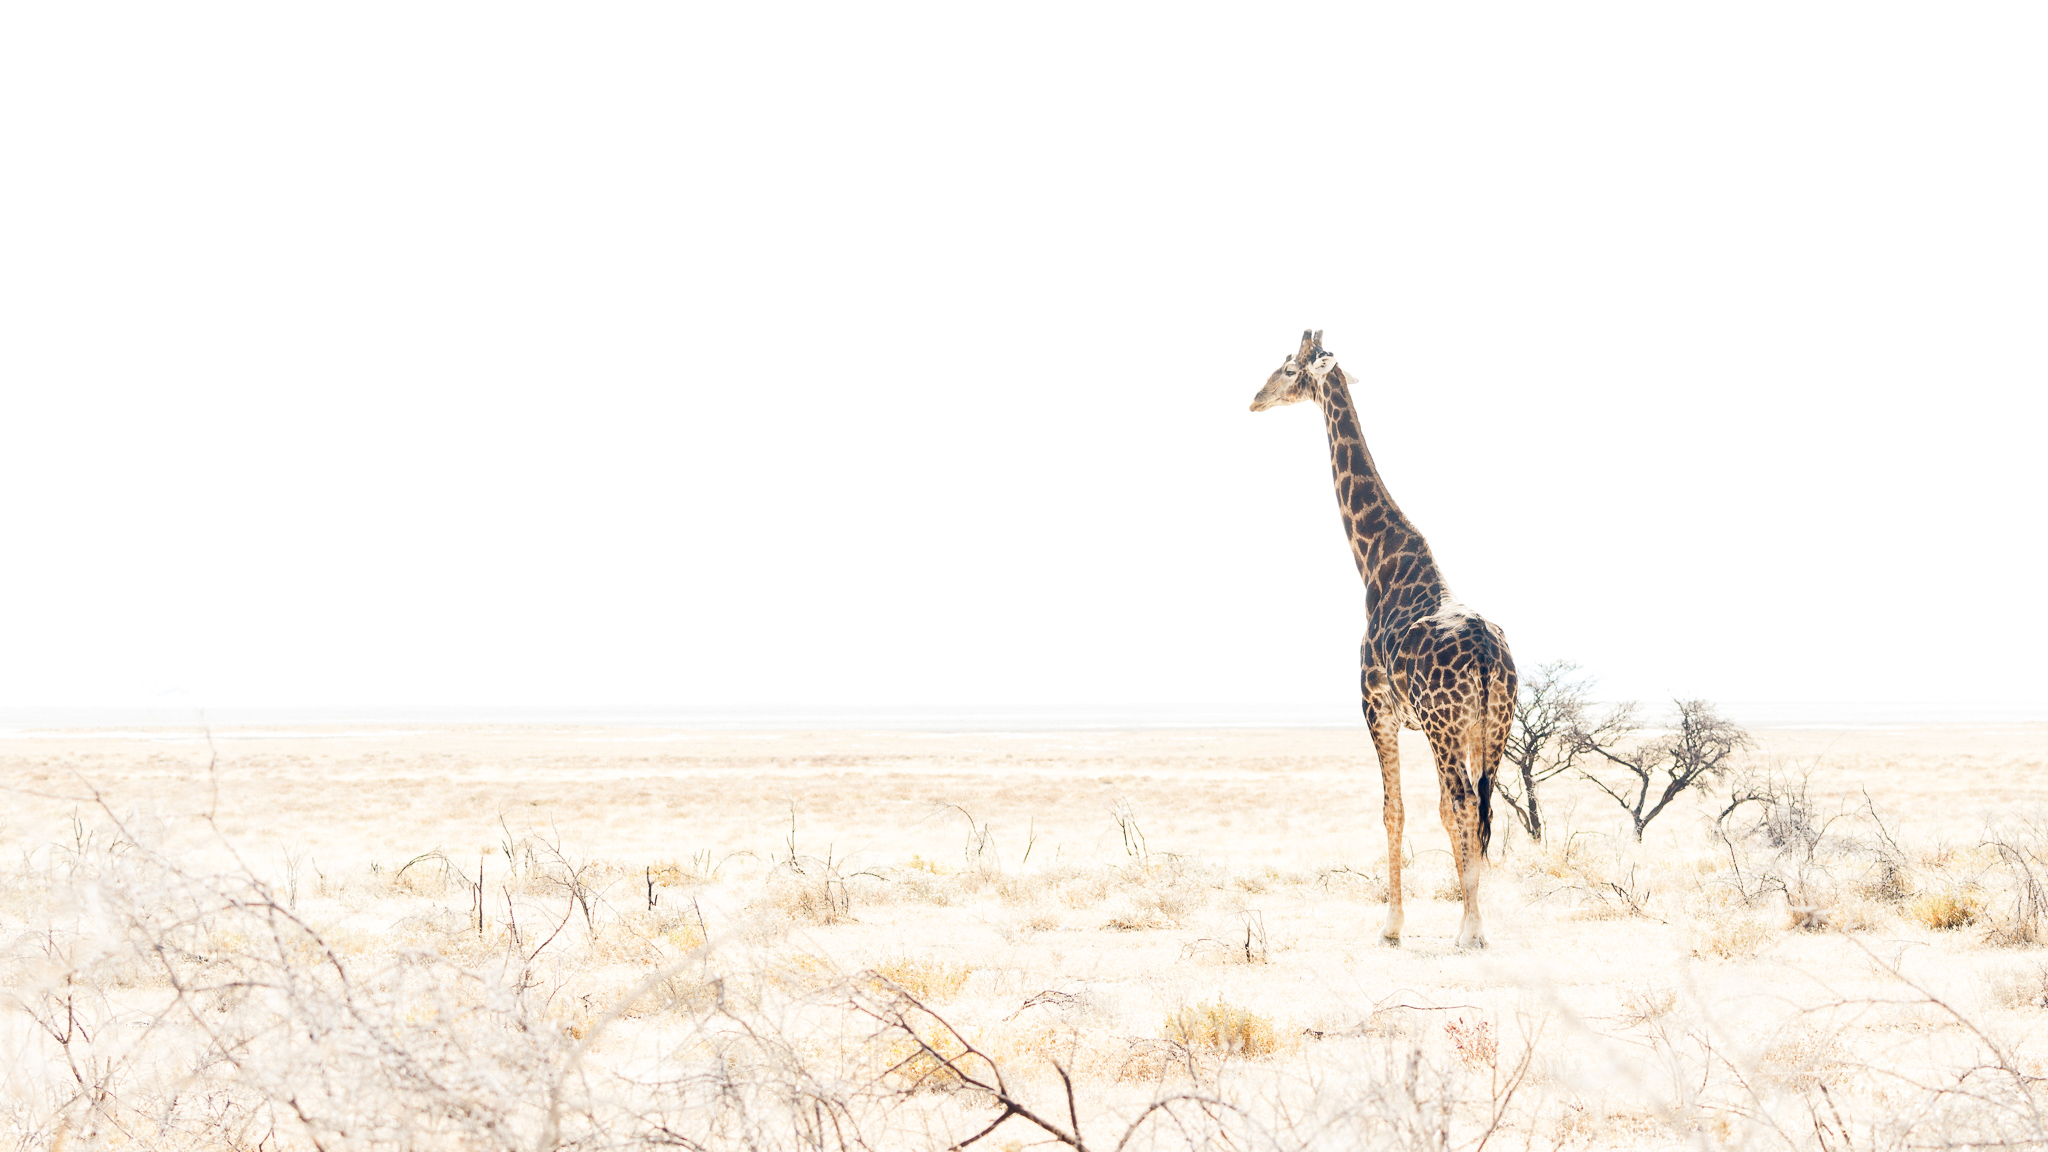 Giraffe standing at midday against the stark white background of the Etosha Pan